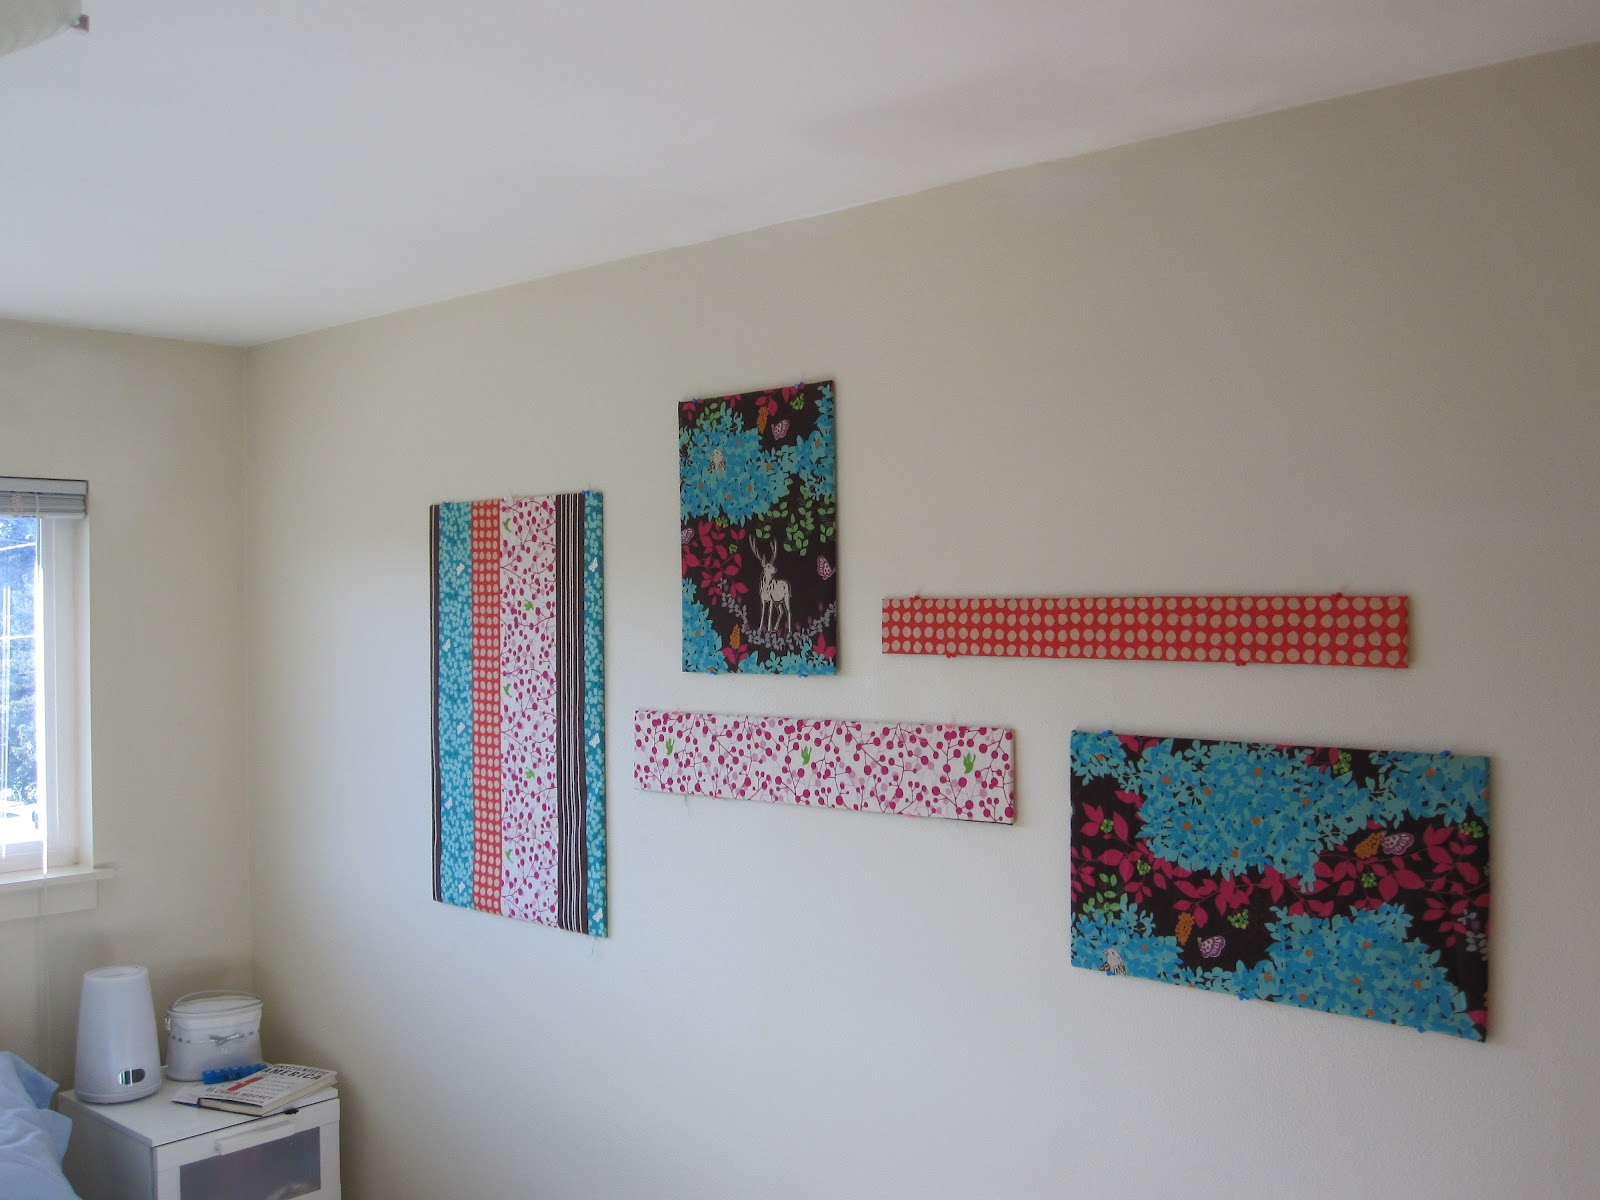 Inexpensive Fabric Wall Art. Decorating an apartment on the cheap is  difficult, especially since I'm mostly over the  posters-and-photos-without-frames look ...